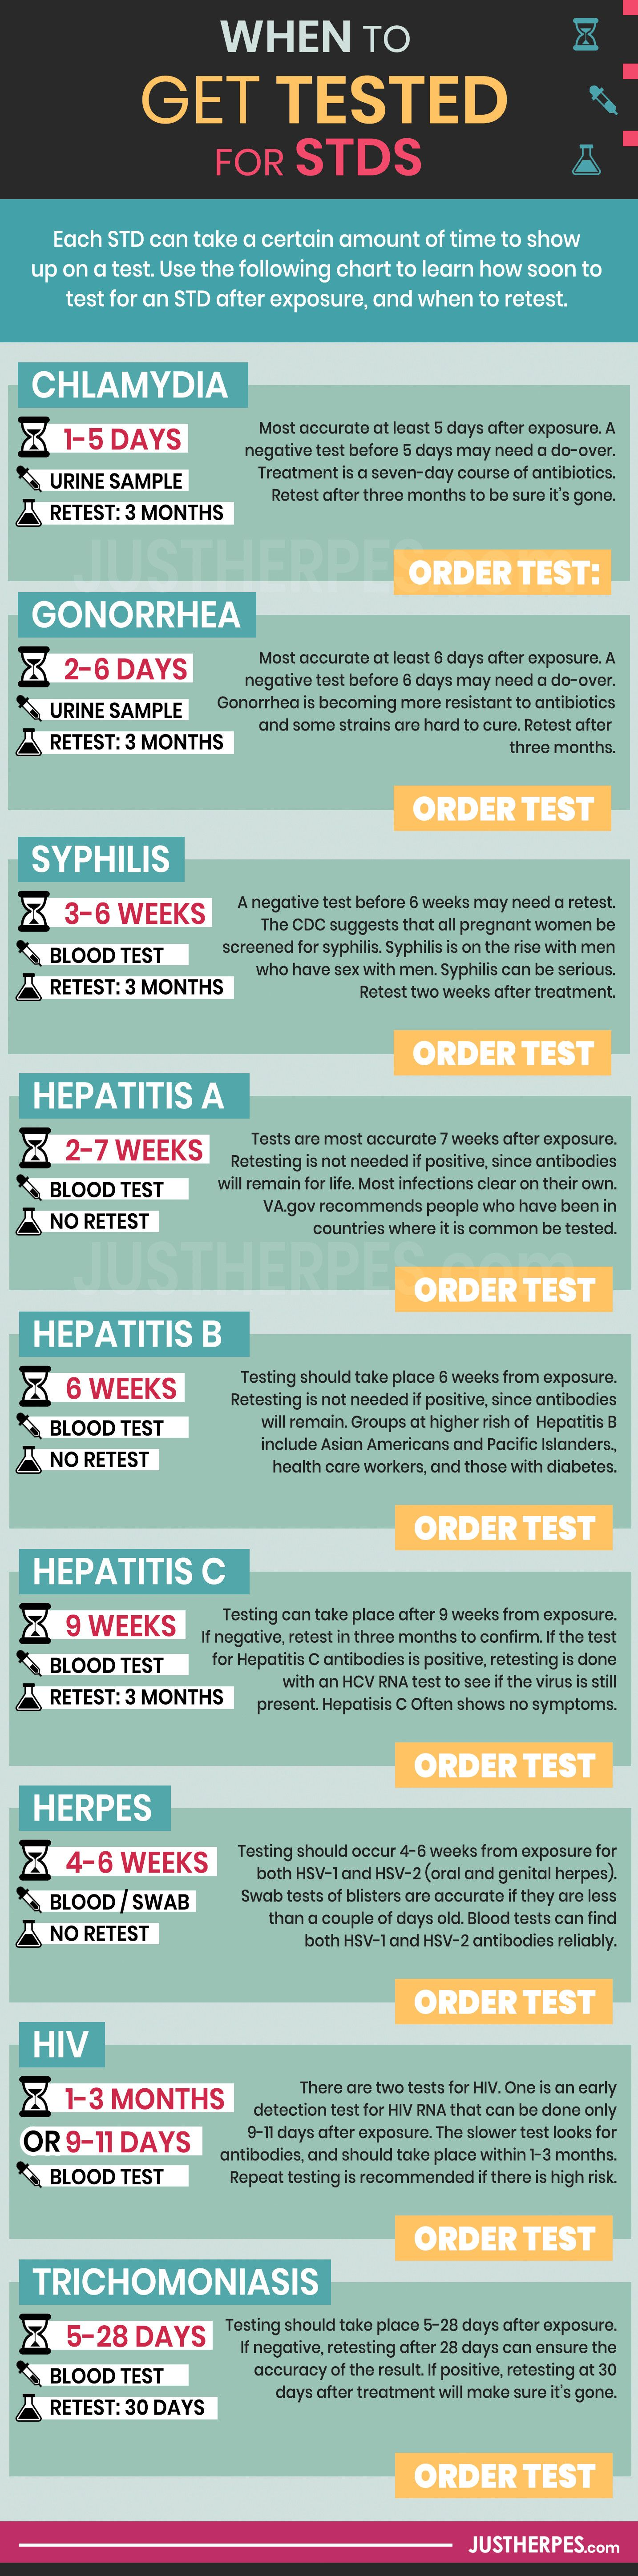 When to Get Tested for STDs / STIs Antiretroviral